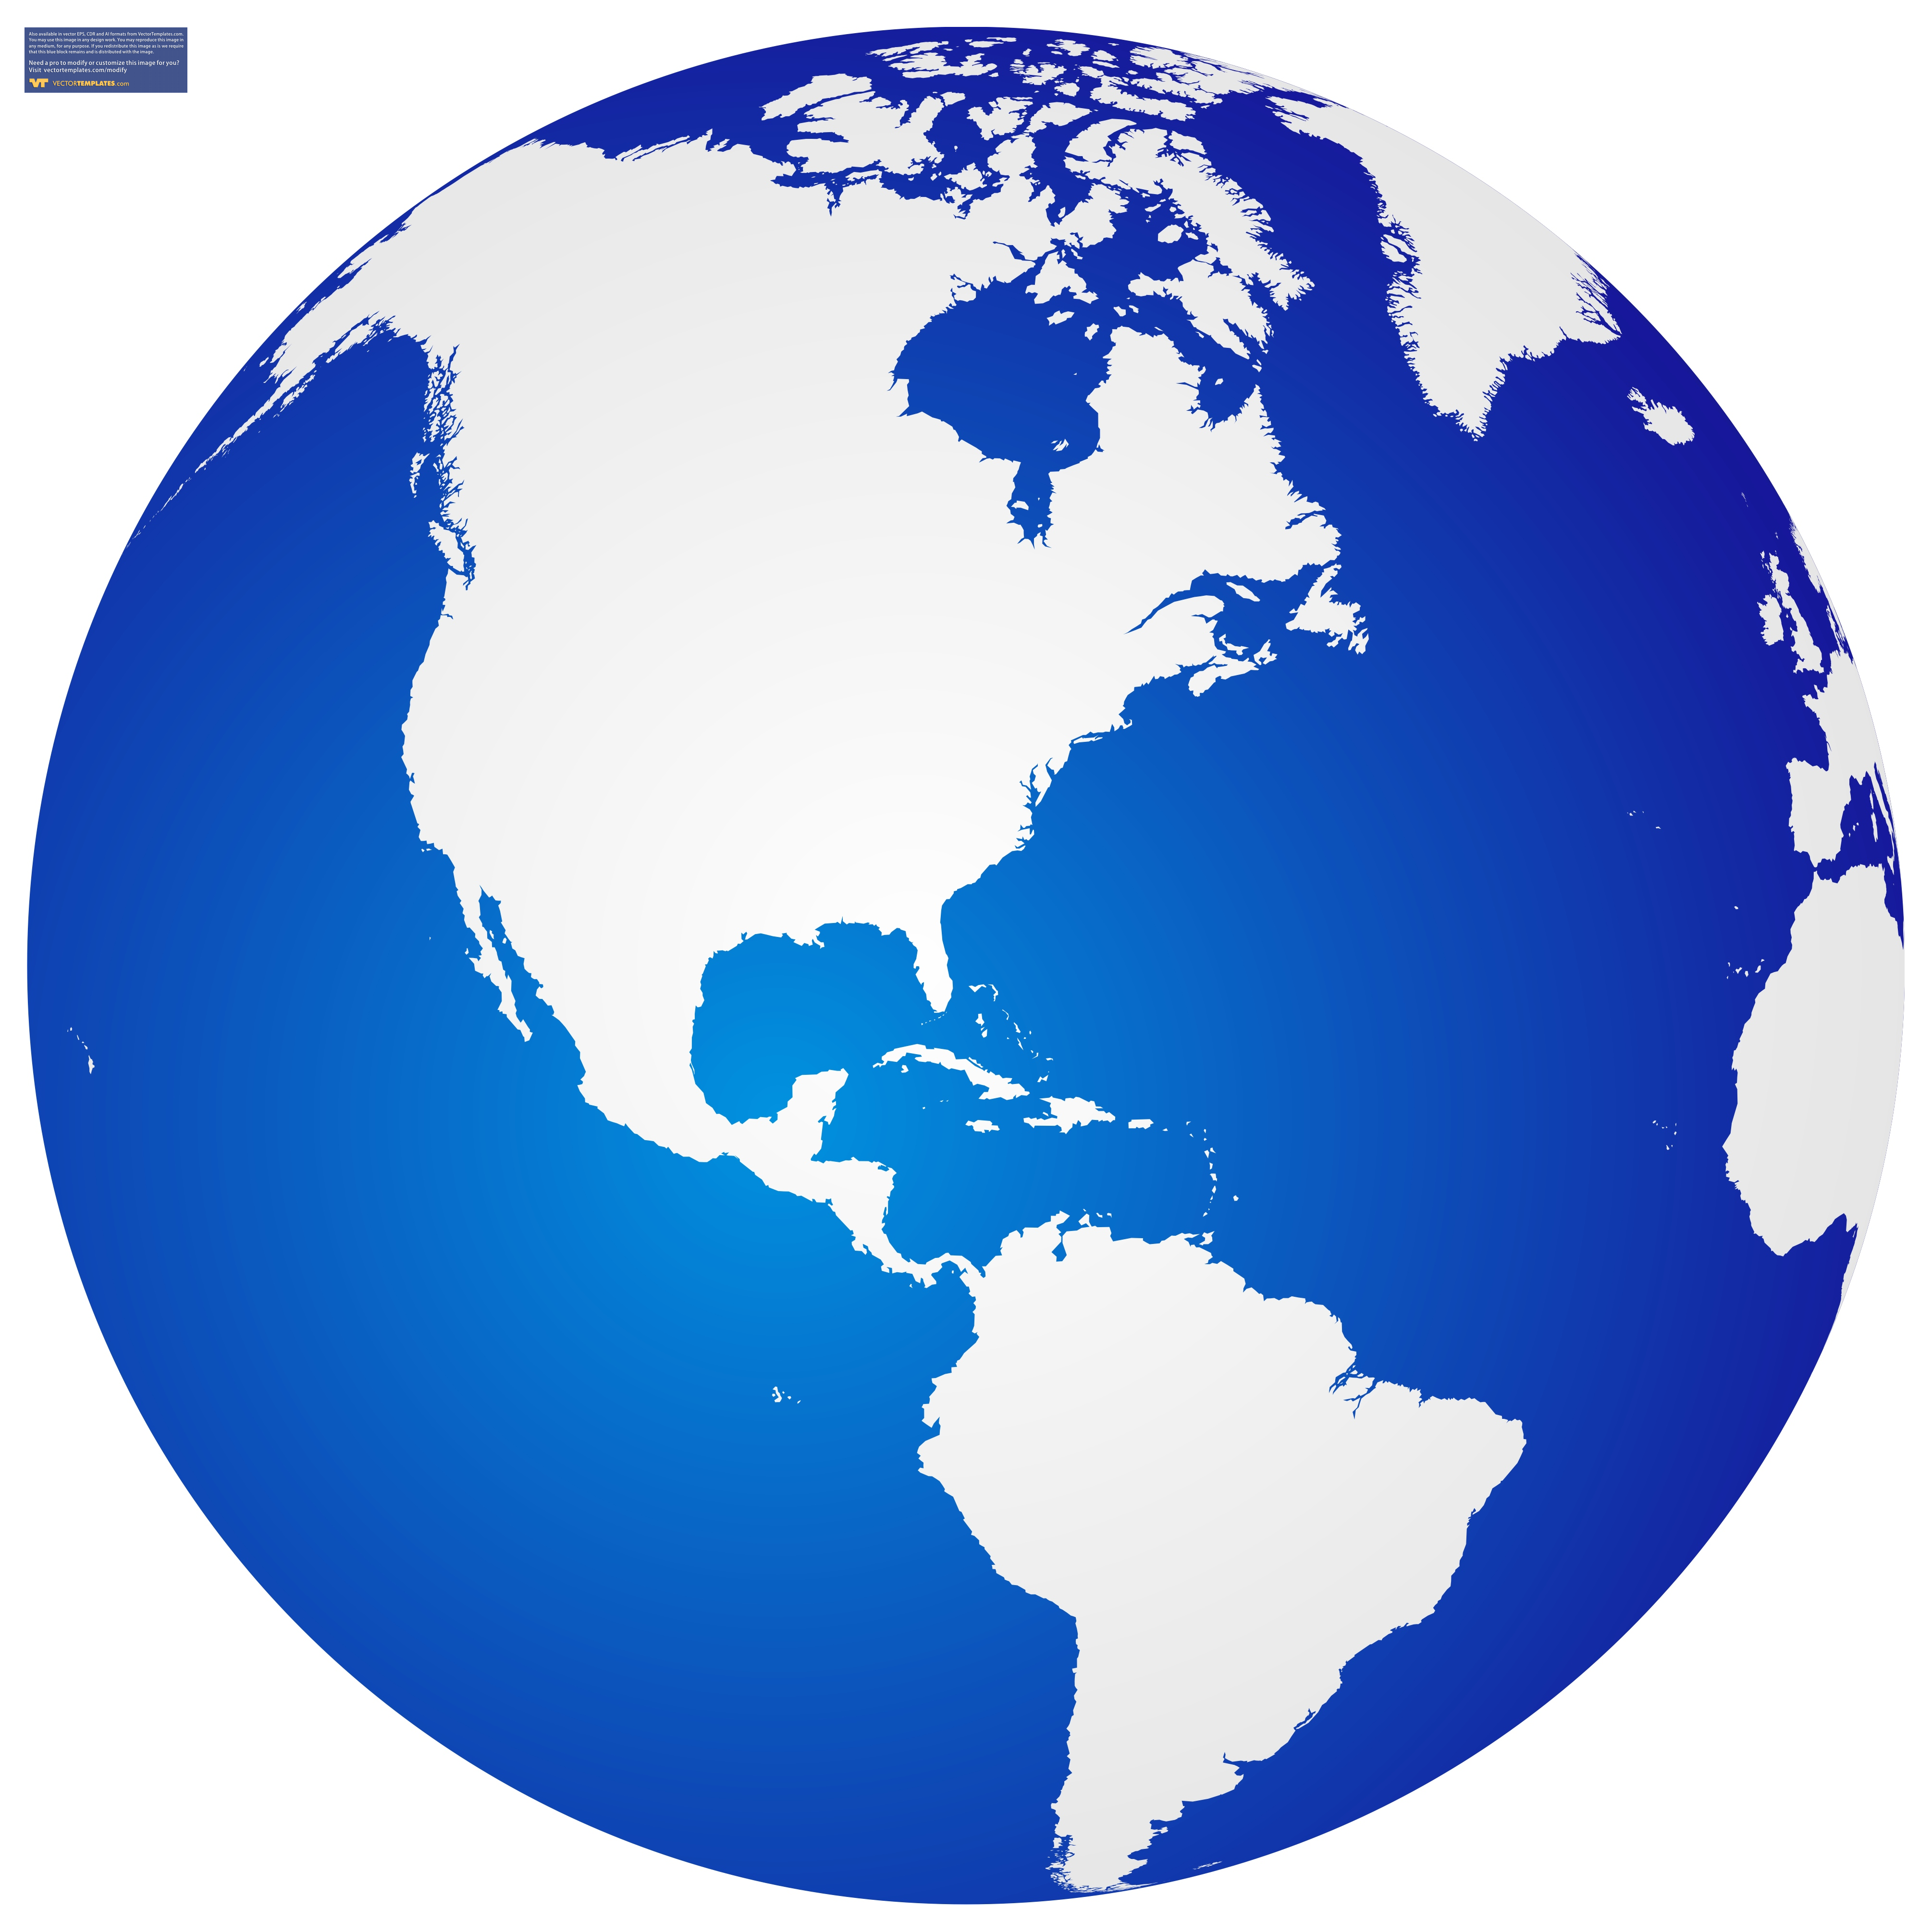 15 Free Vector Earth Images